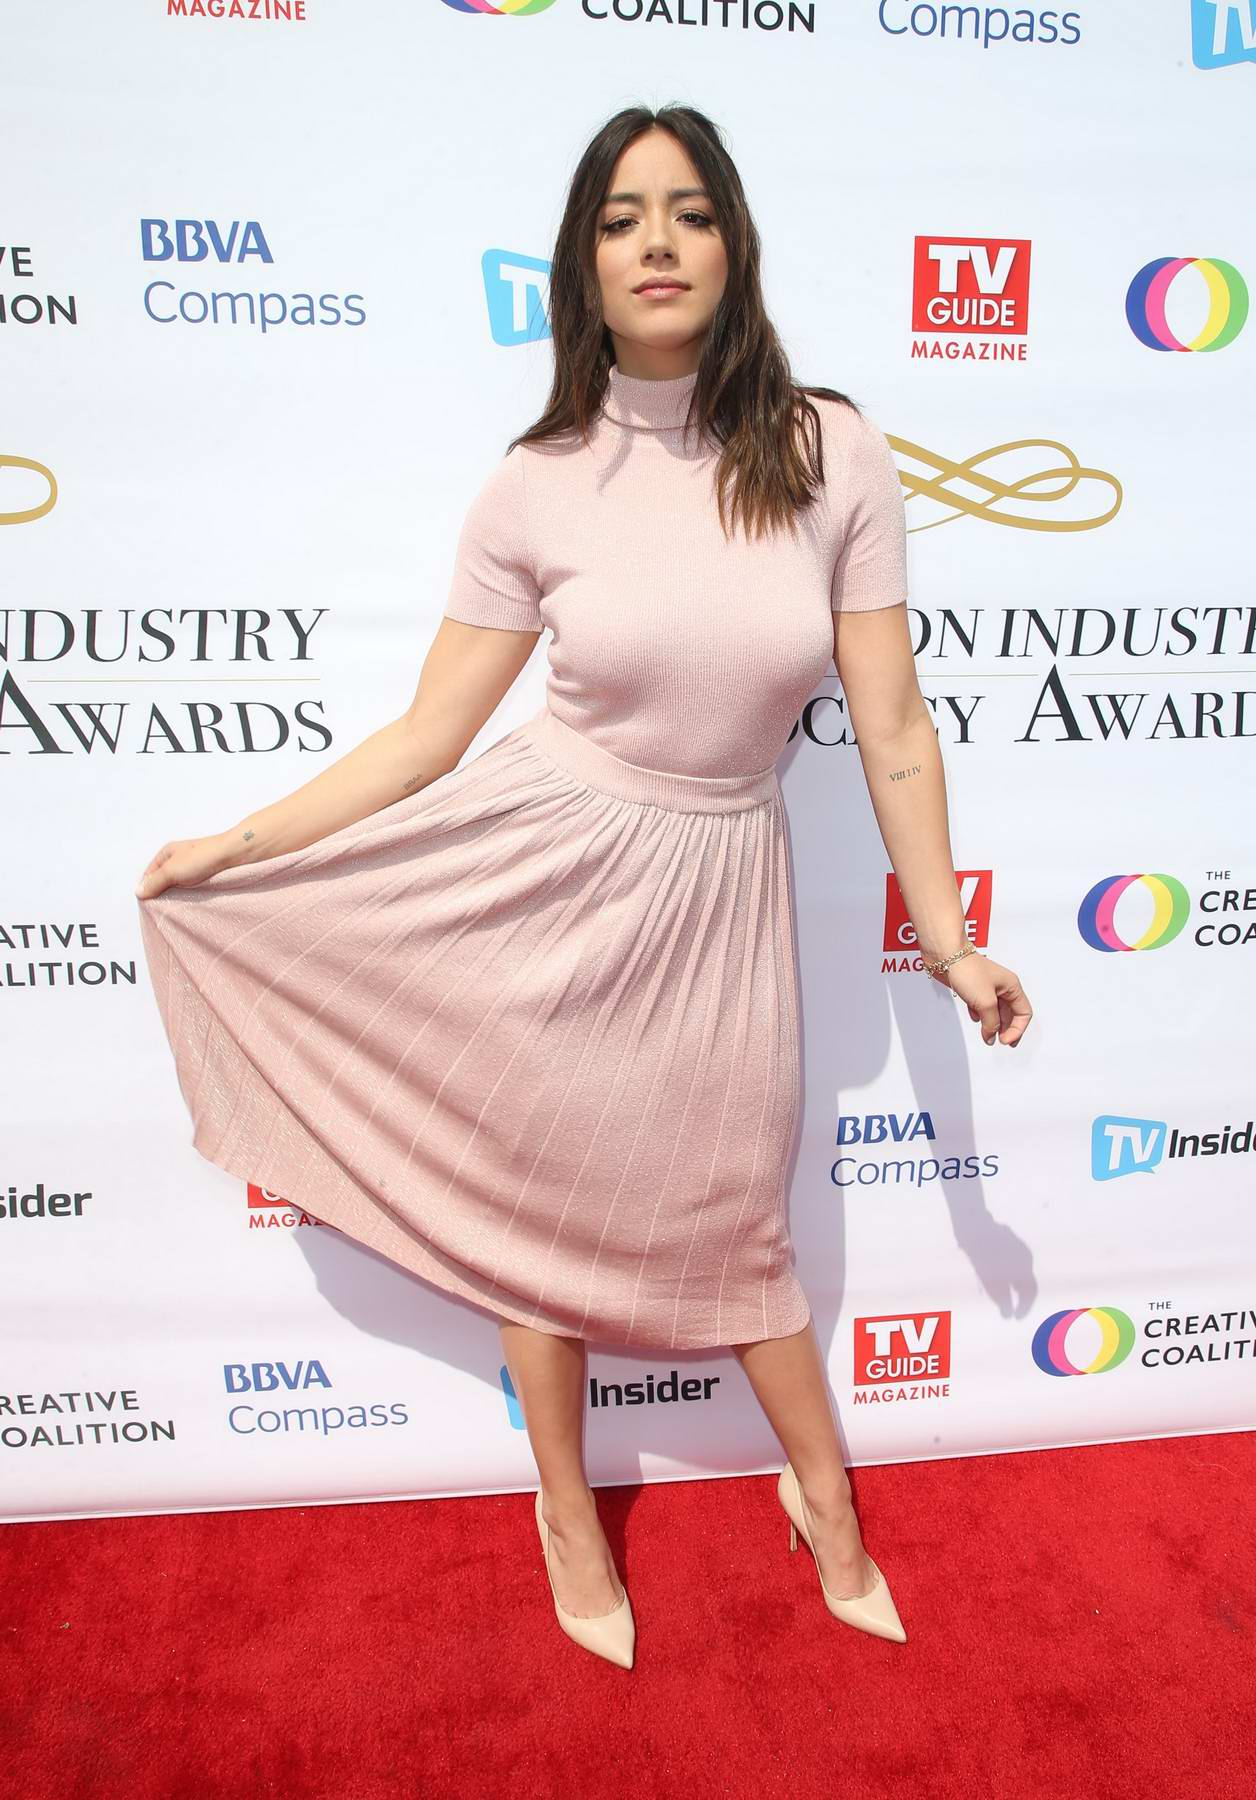 Chloe Bennet at Television Industry Advocacy Awards in Hollywood, Los Angeles